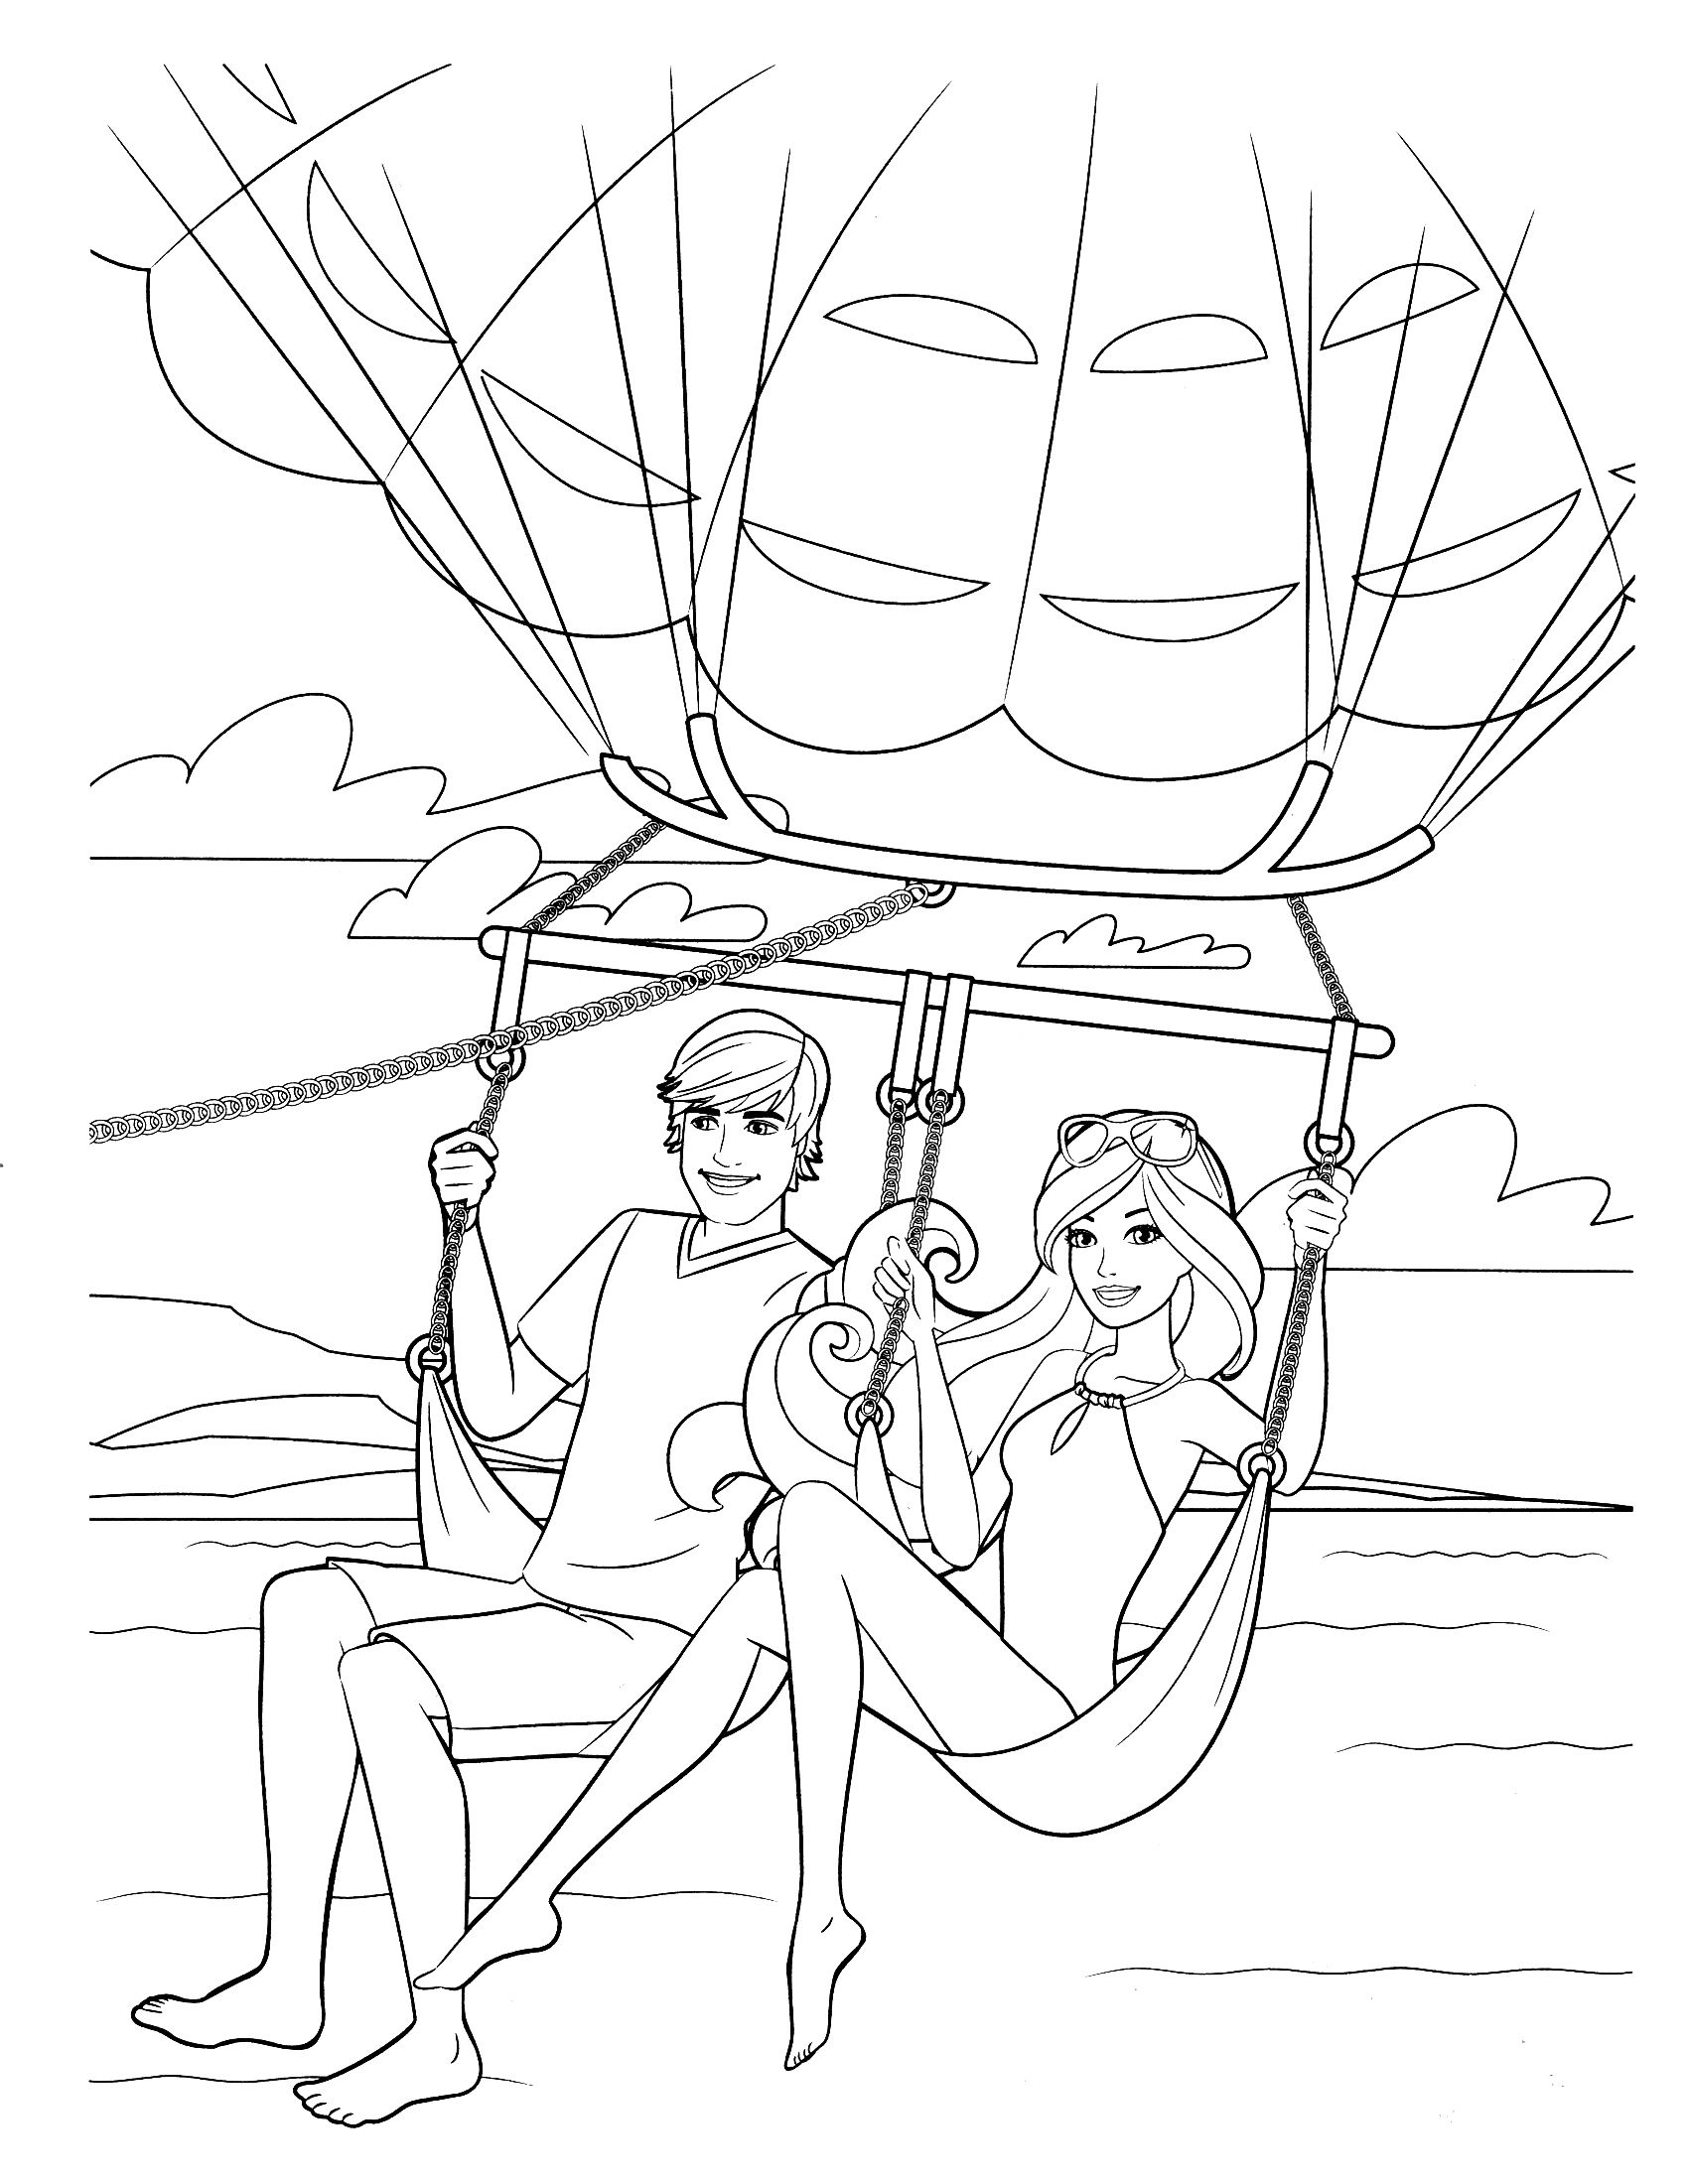 barbie coloring page | color pages and more for kids 1 | Pinterest ...